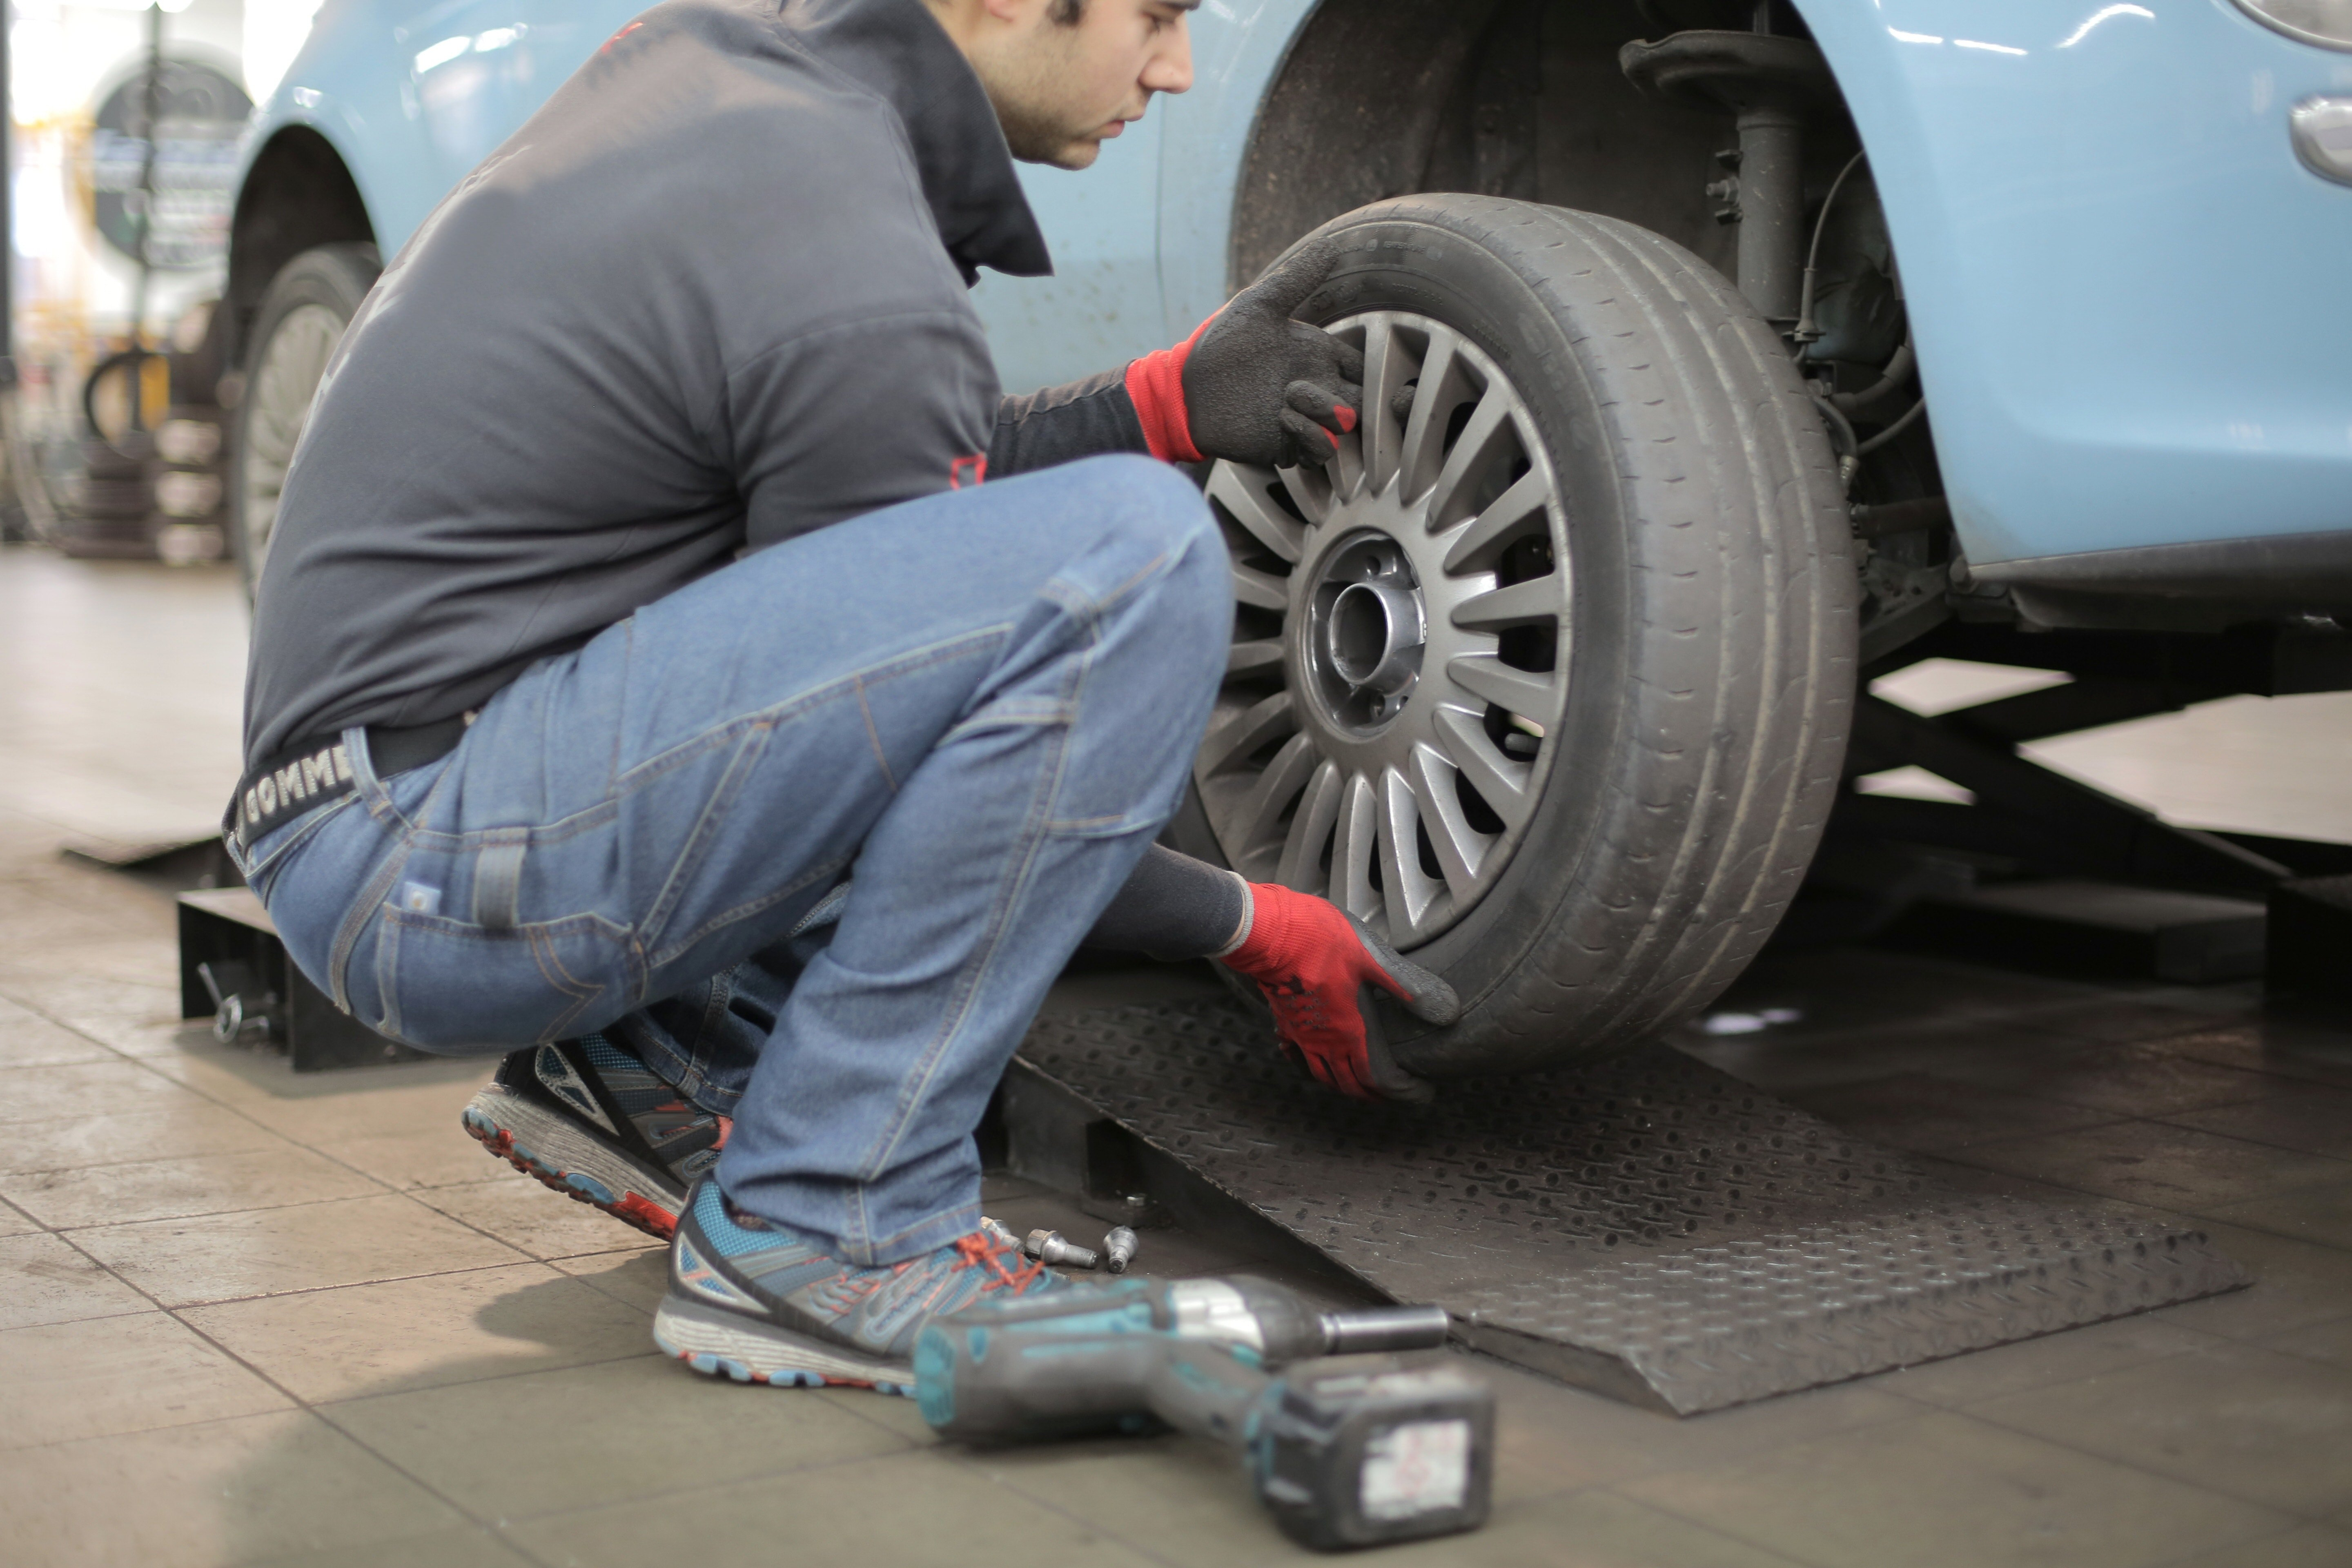 Pictured - A photo of a man changing a tire wearing jeans, a gray jacket and matching gloves | Source: Pexels